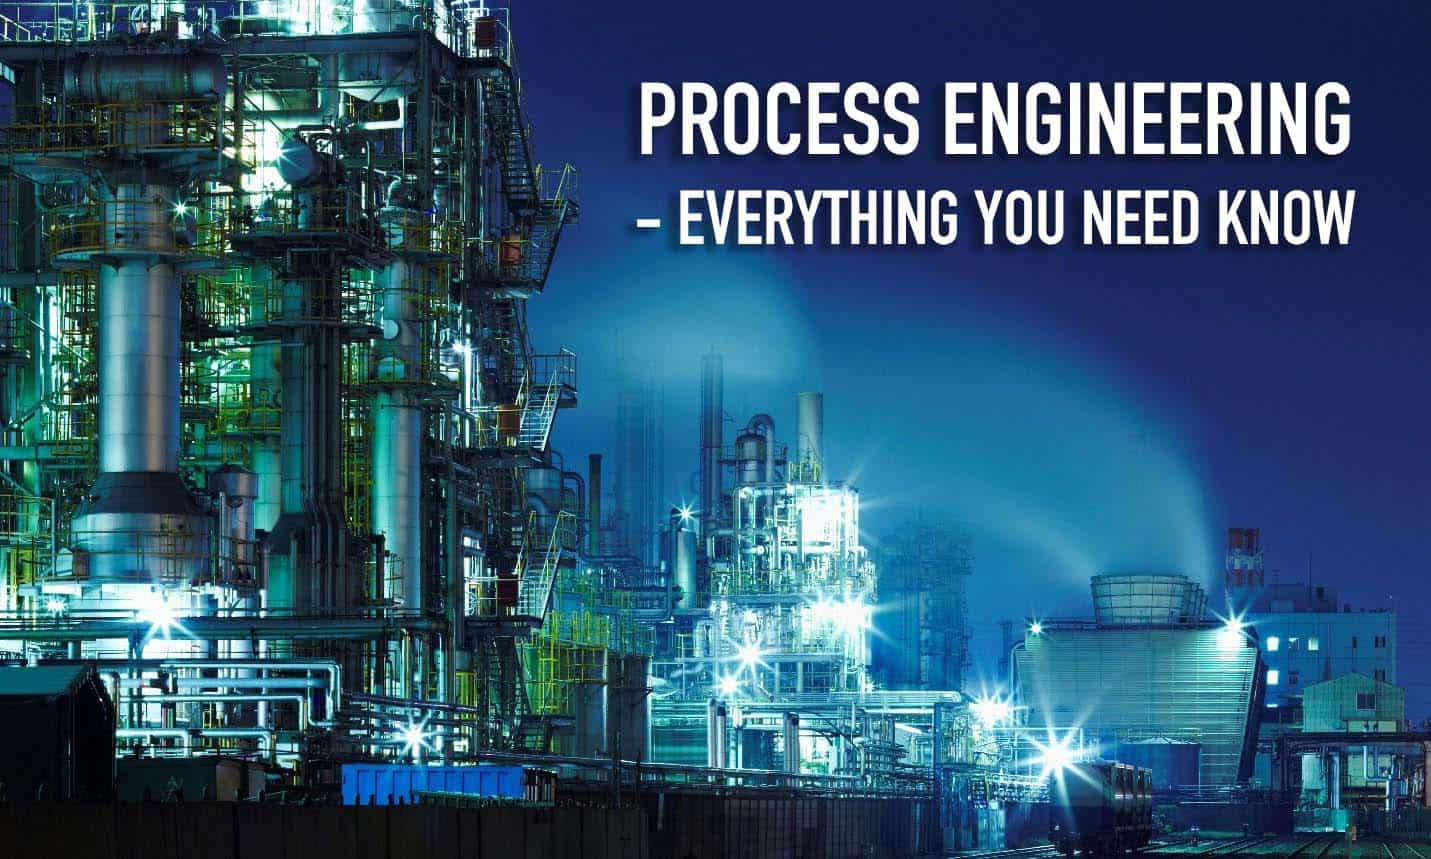 Process Engineering Everything You Need To Know